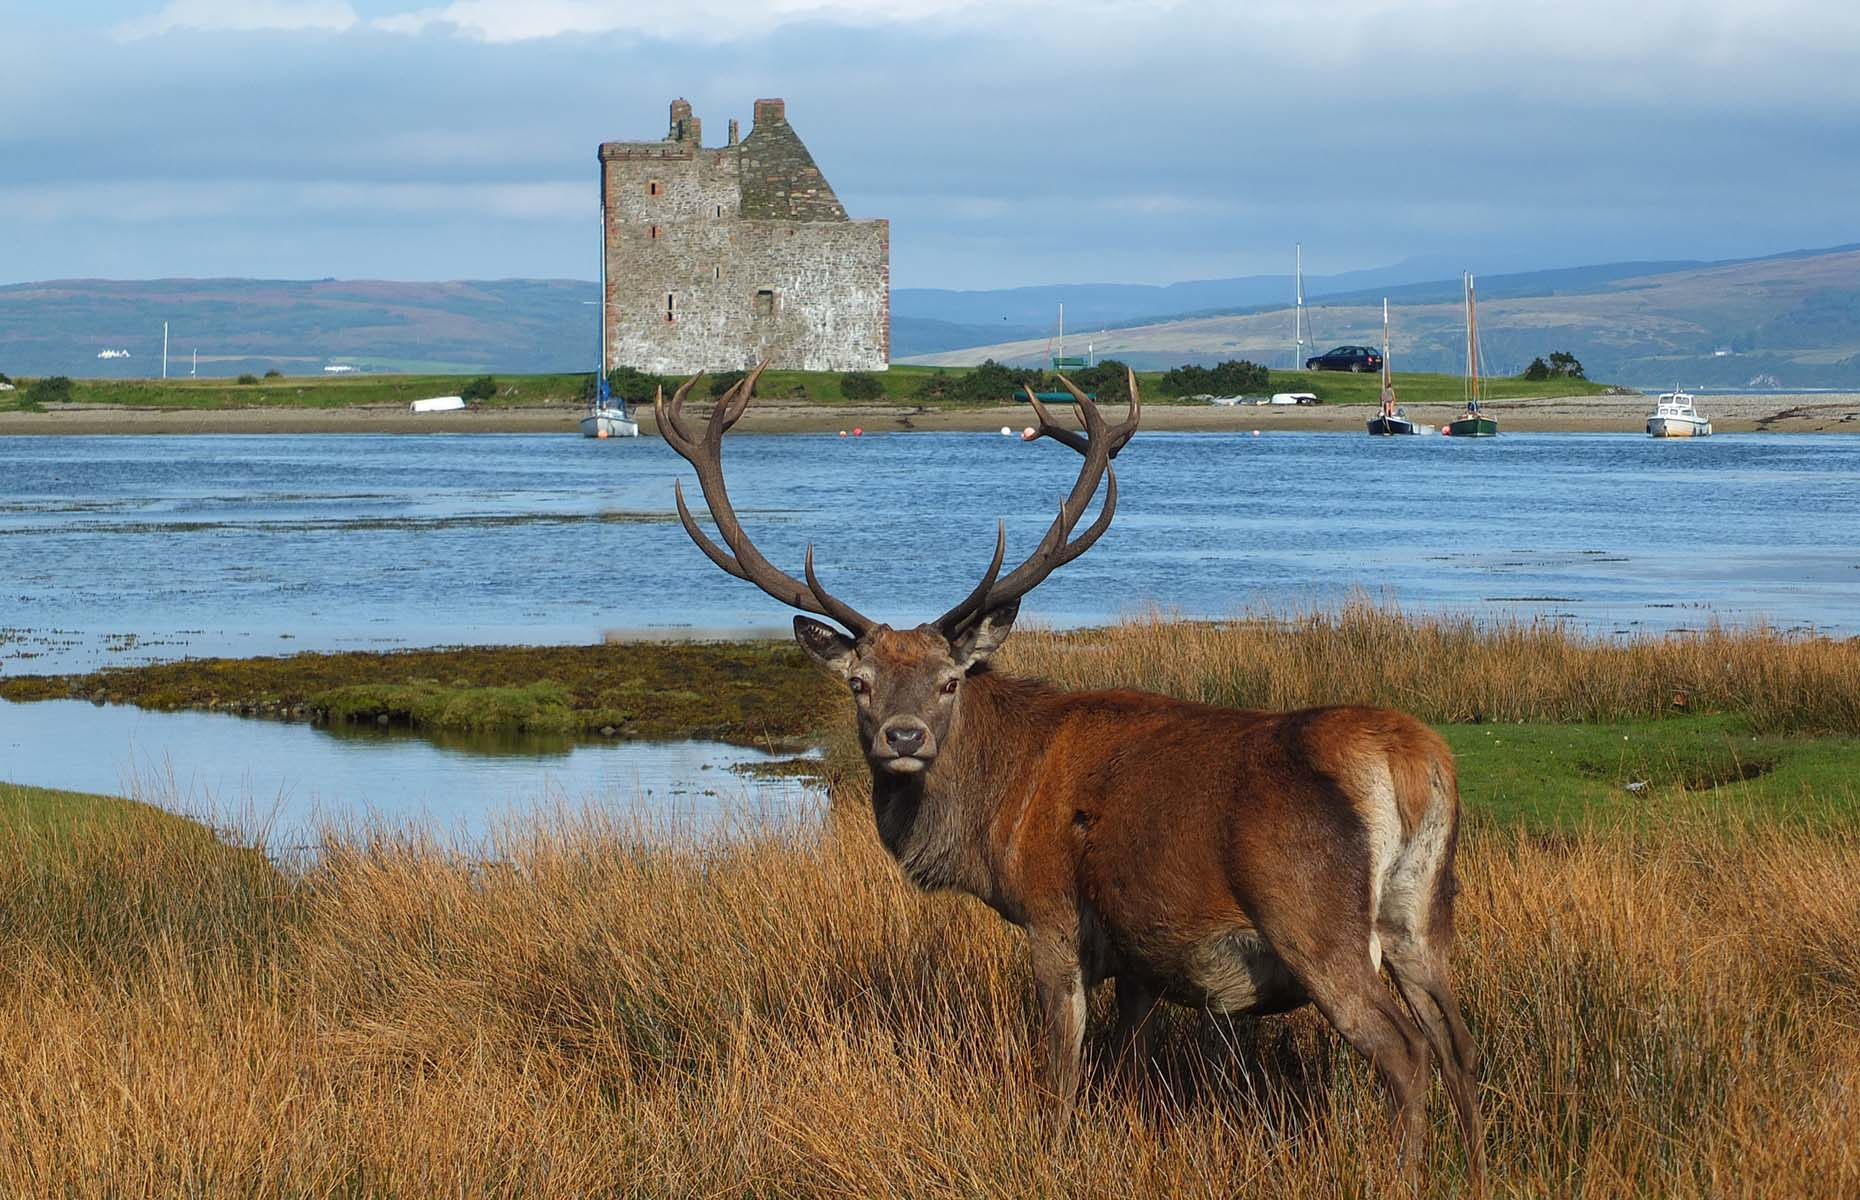 Red deer on the Isle of Arran in Scotland (Image: Allan Napier/Shutterstock)